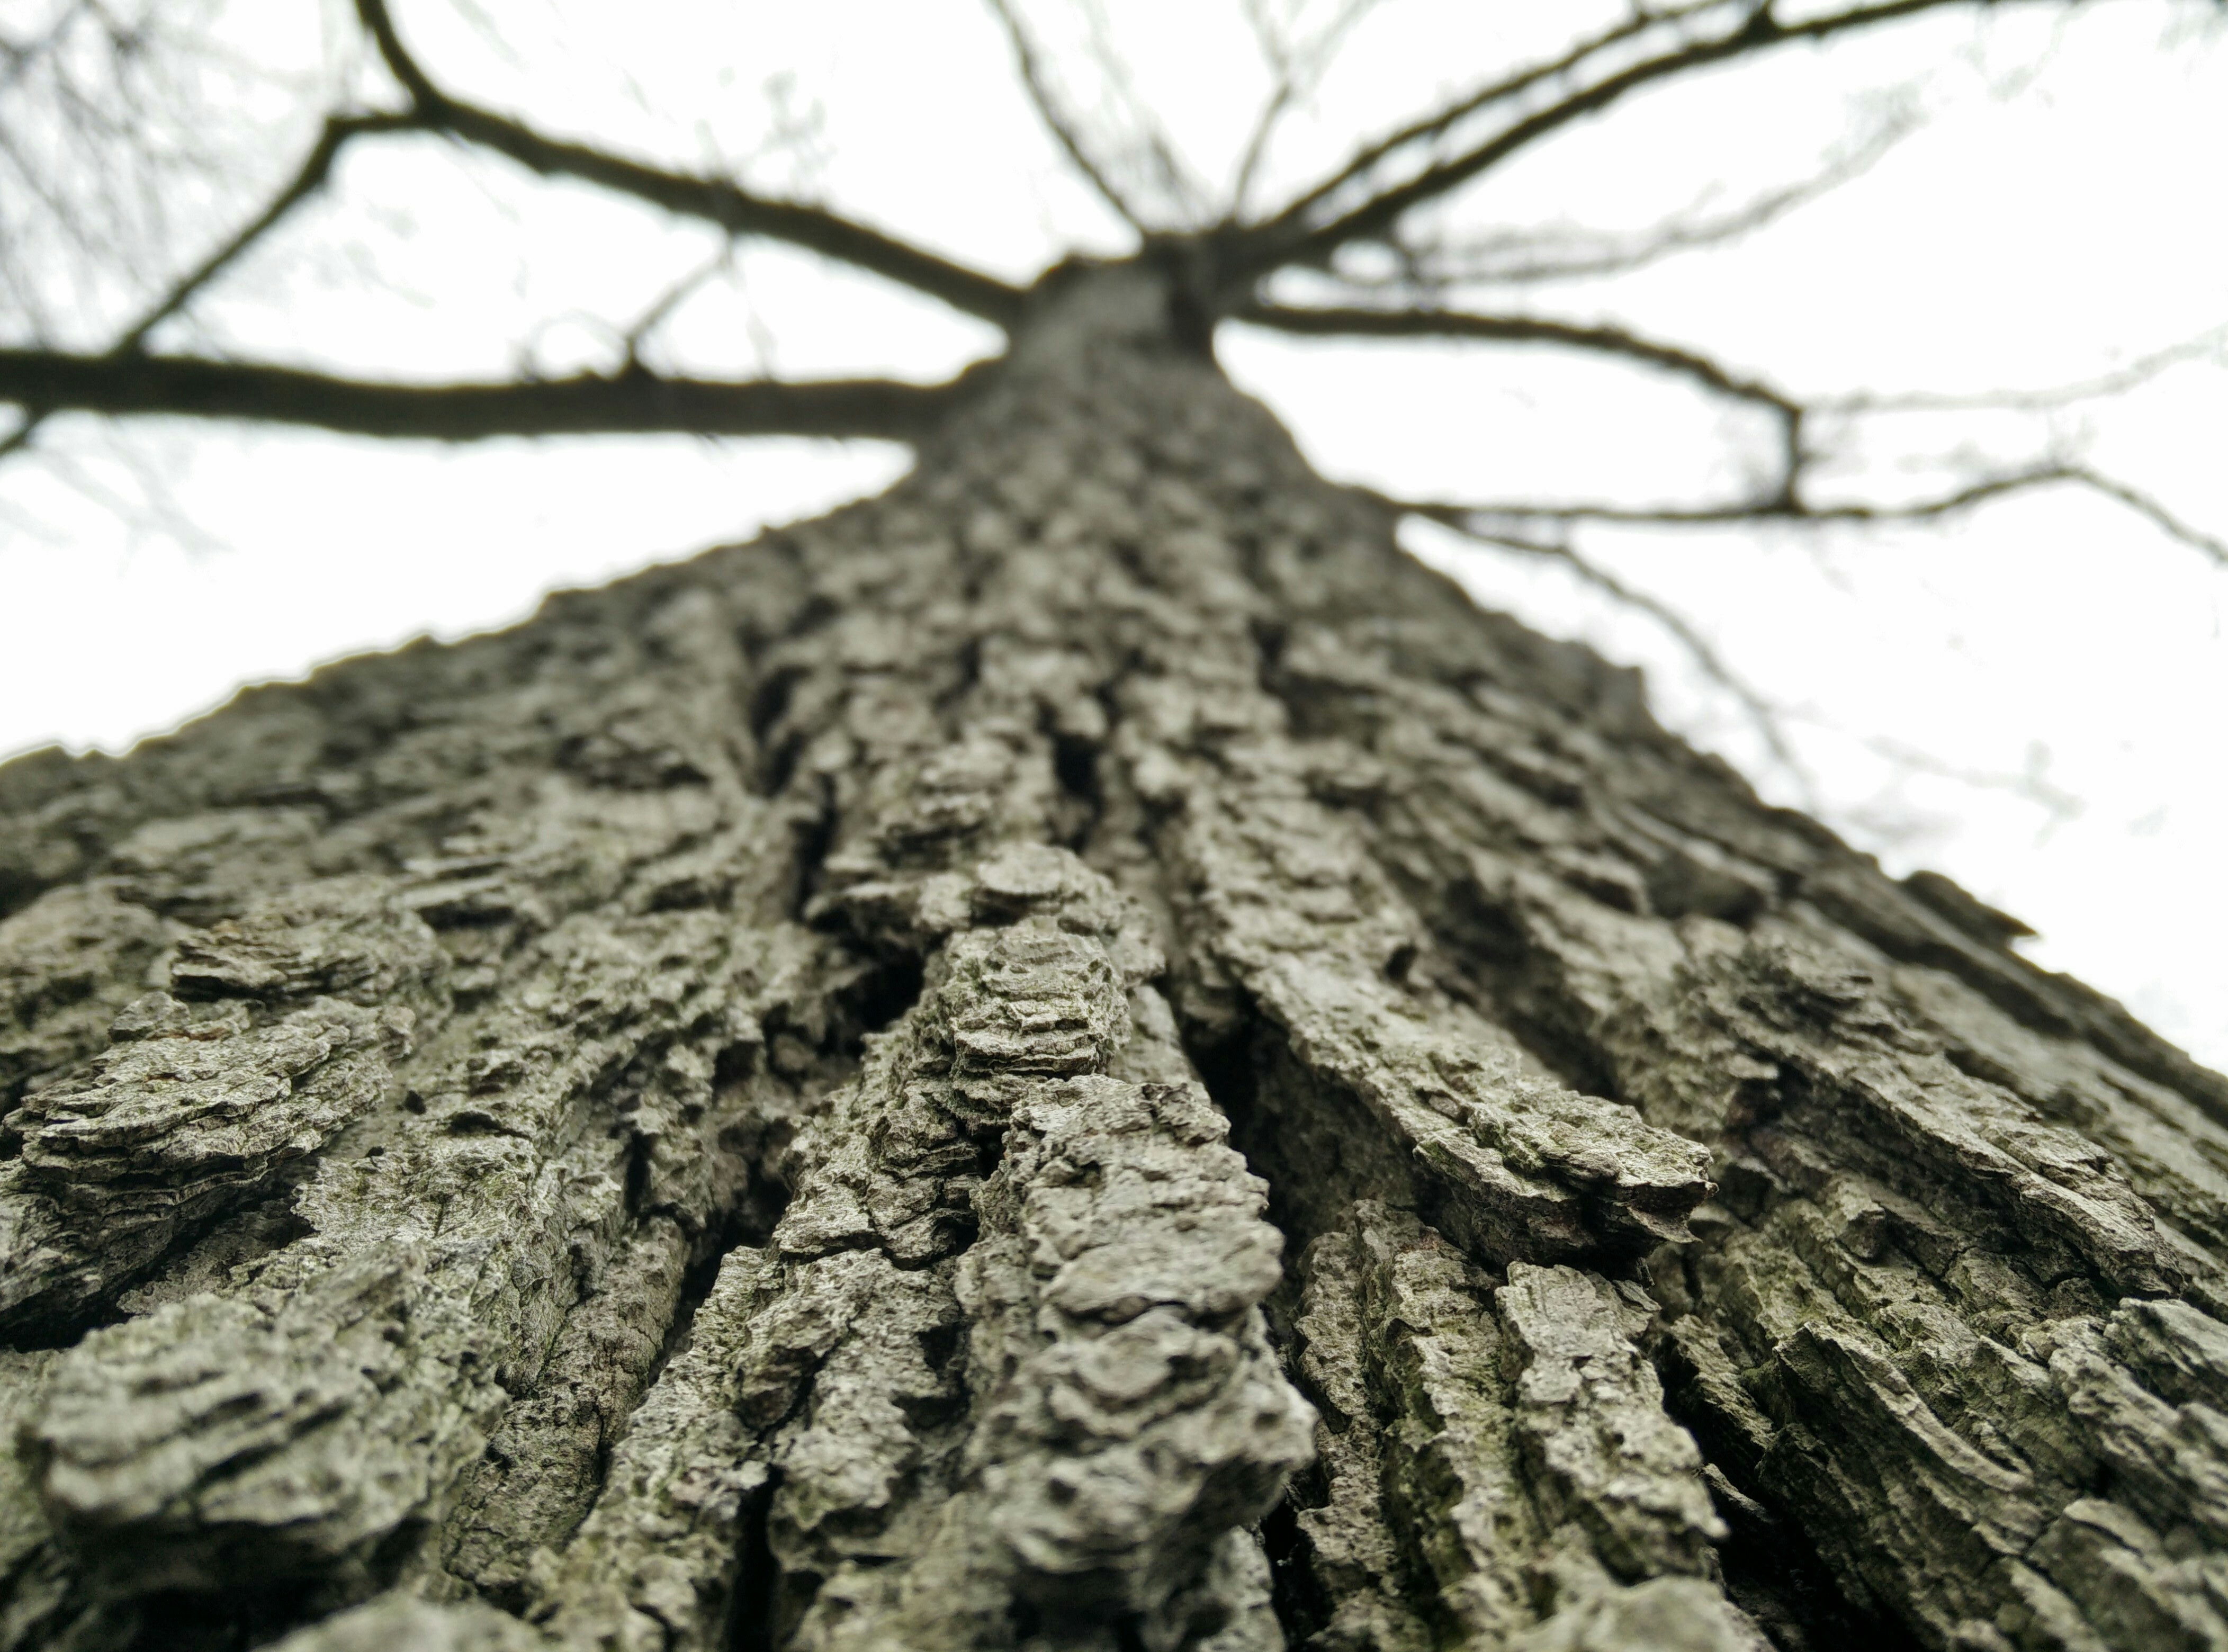 tree-nature-branch-black-and-white-plant-wood-103248-pxhere.com